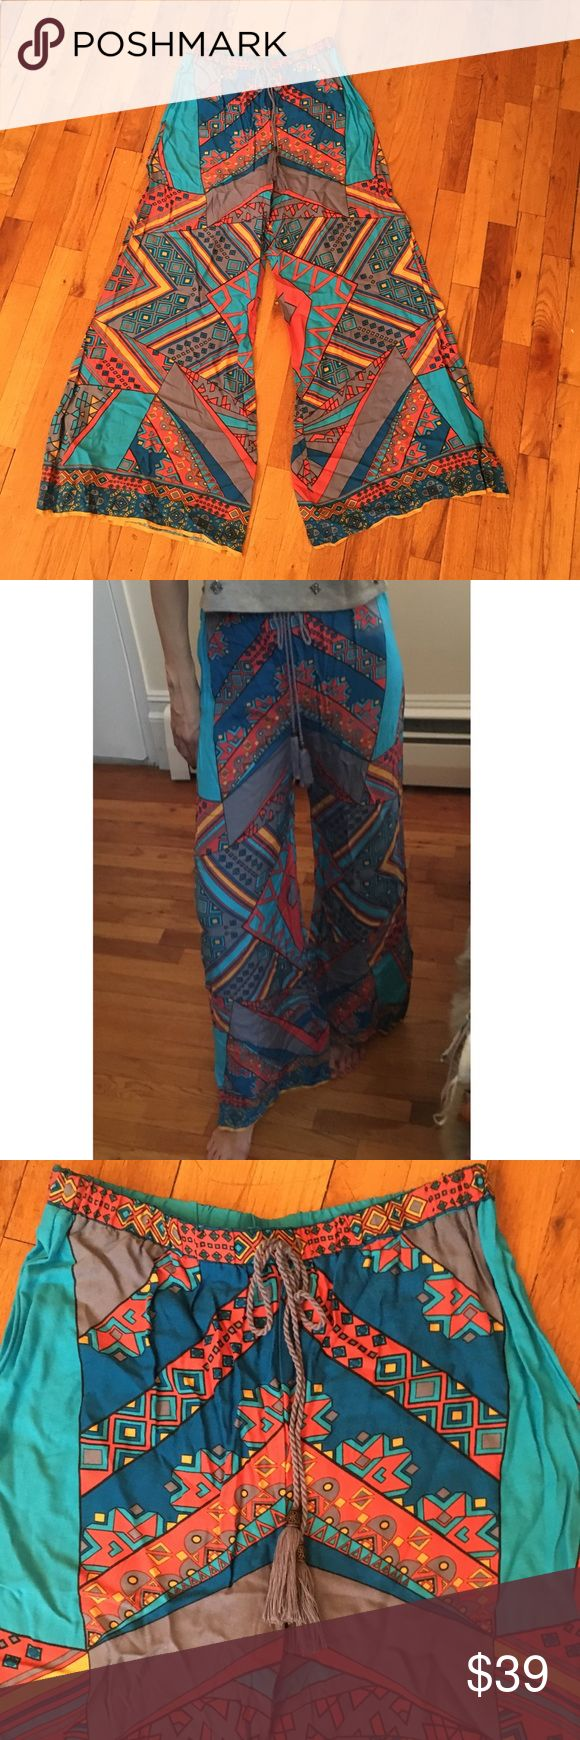 Flying tomato printed palazzo pants Flying tomato printed palazzo pants 100% Cotton Sz M Flying Tomato Pants Wide Leg